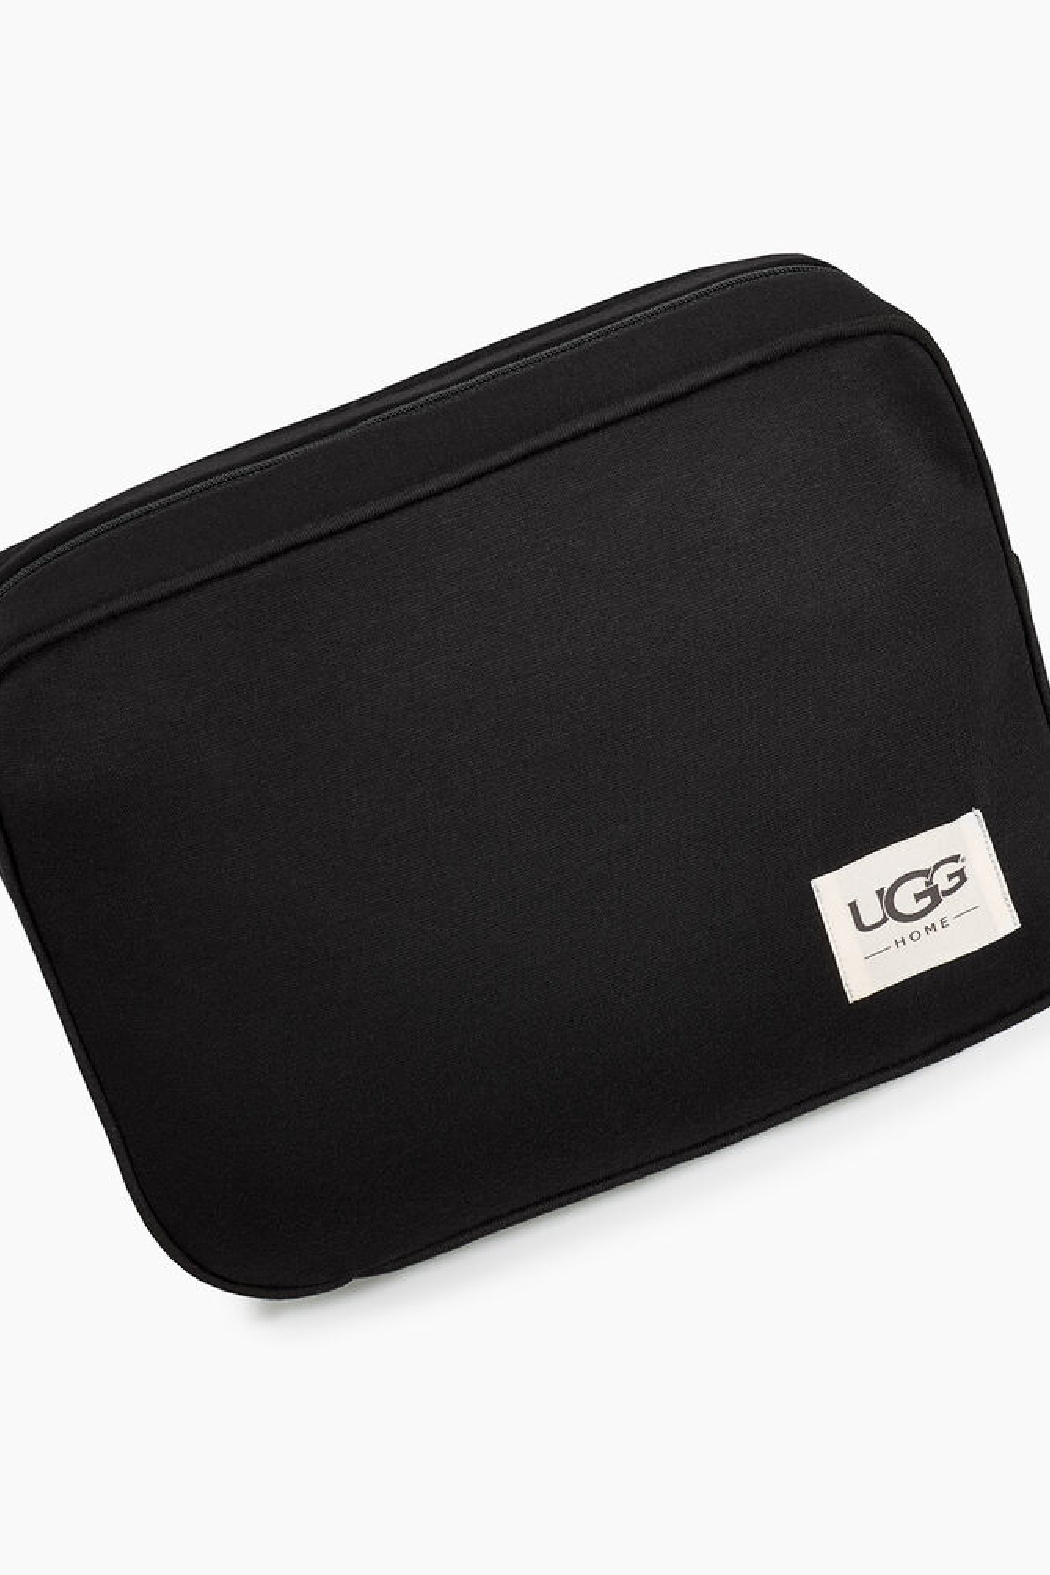 Ugg Duffield Travel Set Soft Pouch - Main Image